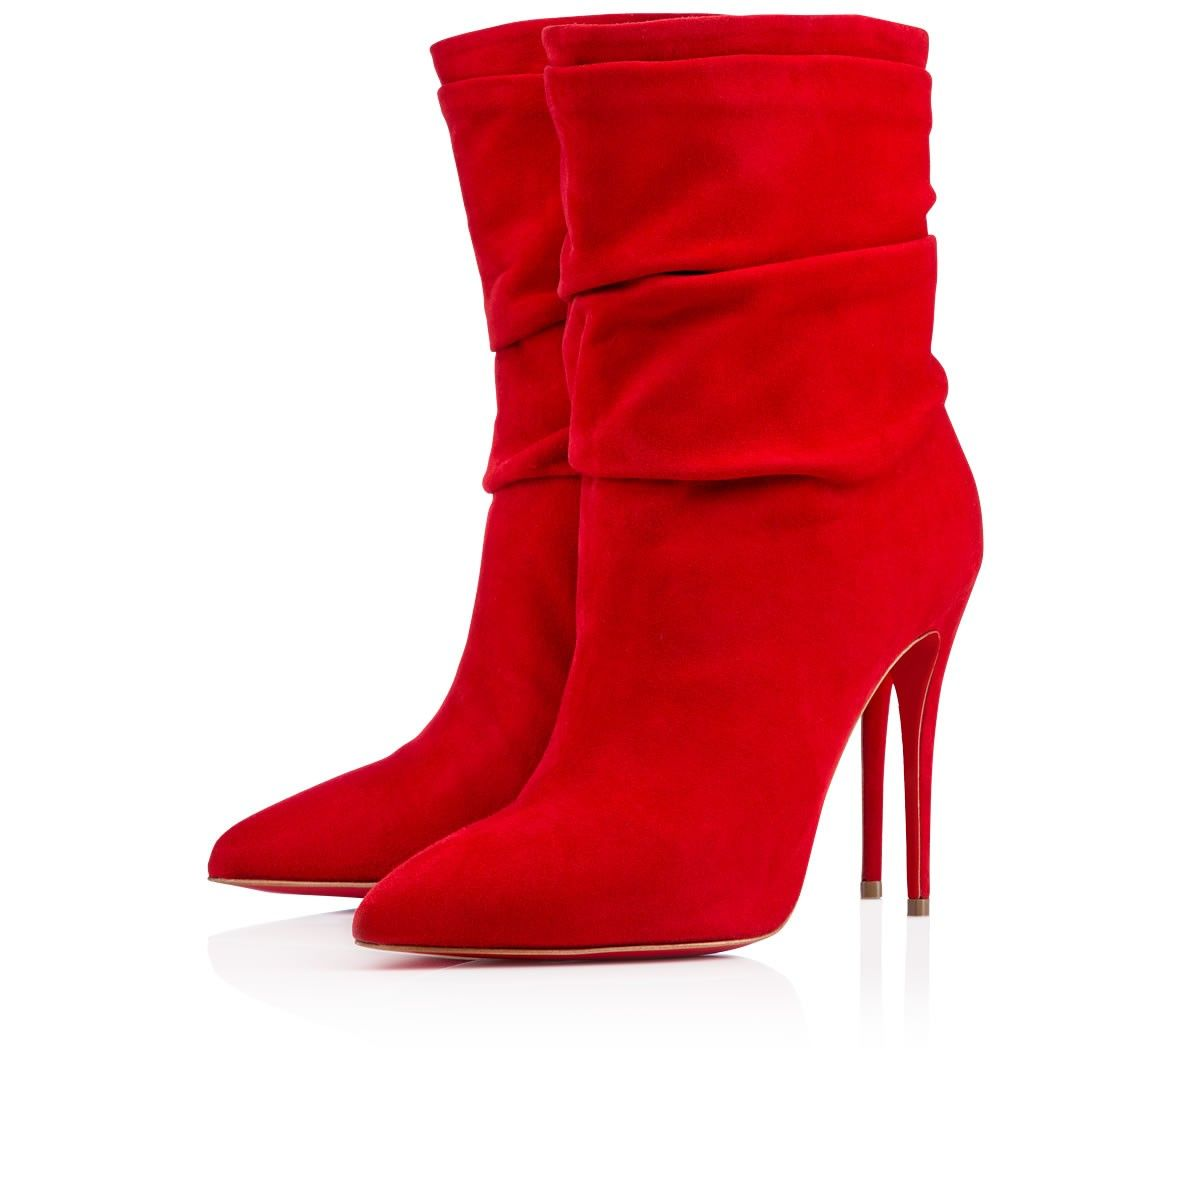 """Let your inner diva rise this season with """"Ishtar Booty"""" in luscious rouge de mars. Her exquisitely draped suede upper creates a sexy effect that is enhanced by her chic pointed toe and slender 100mm stiletto heel."""